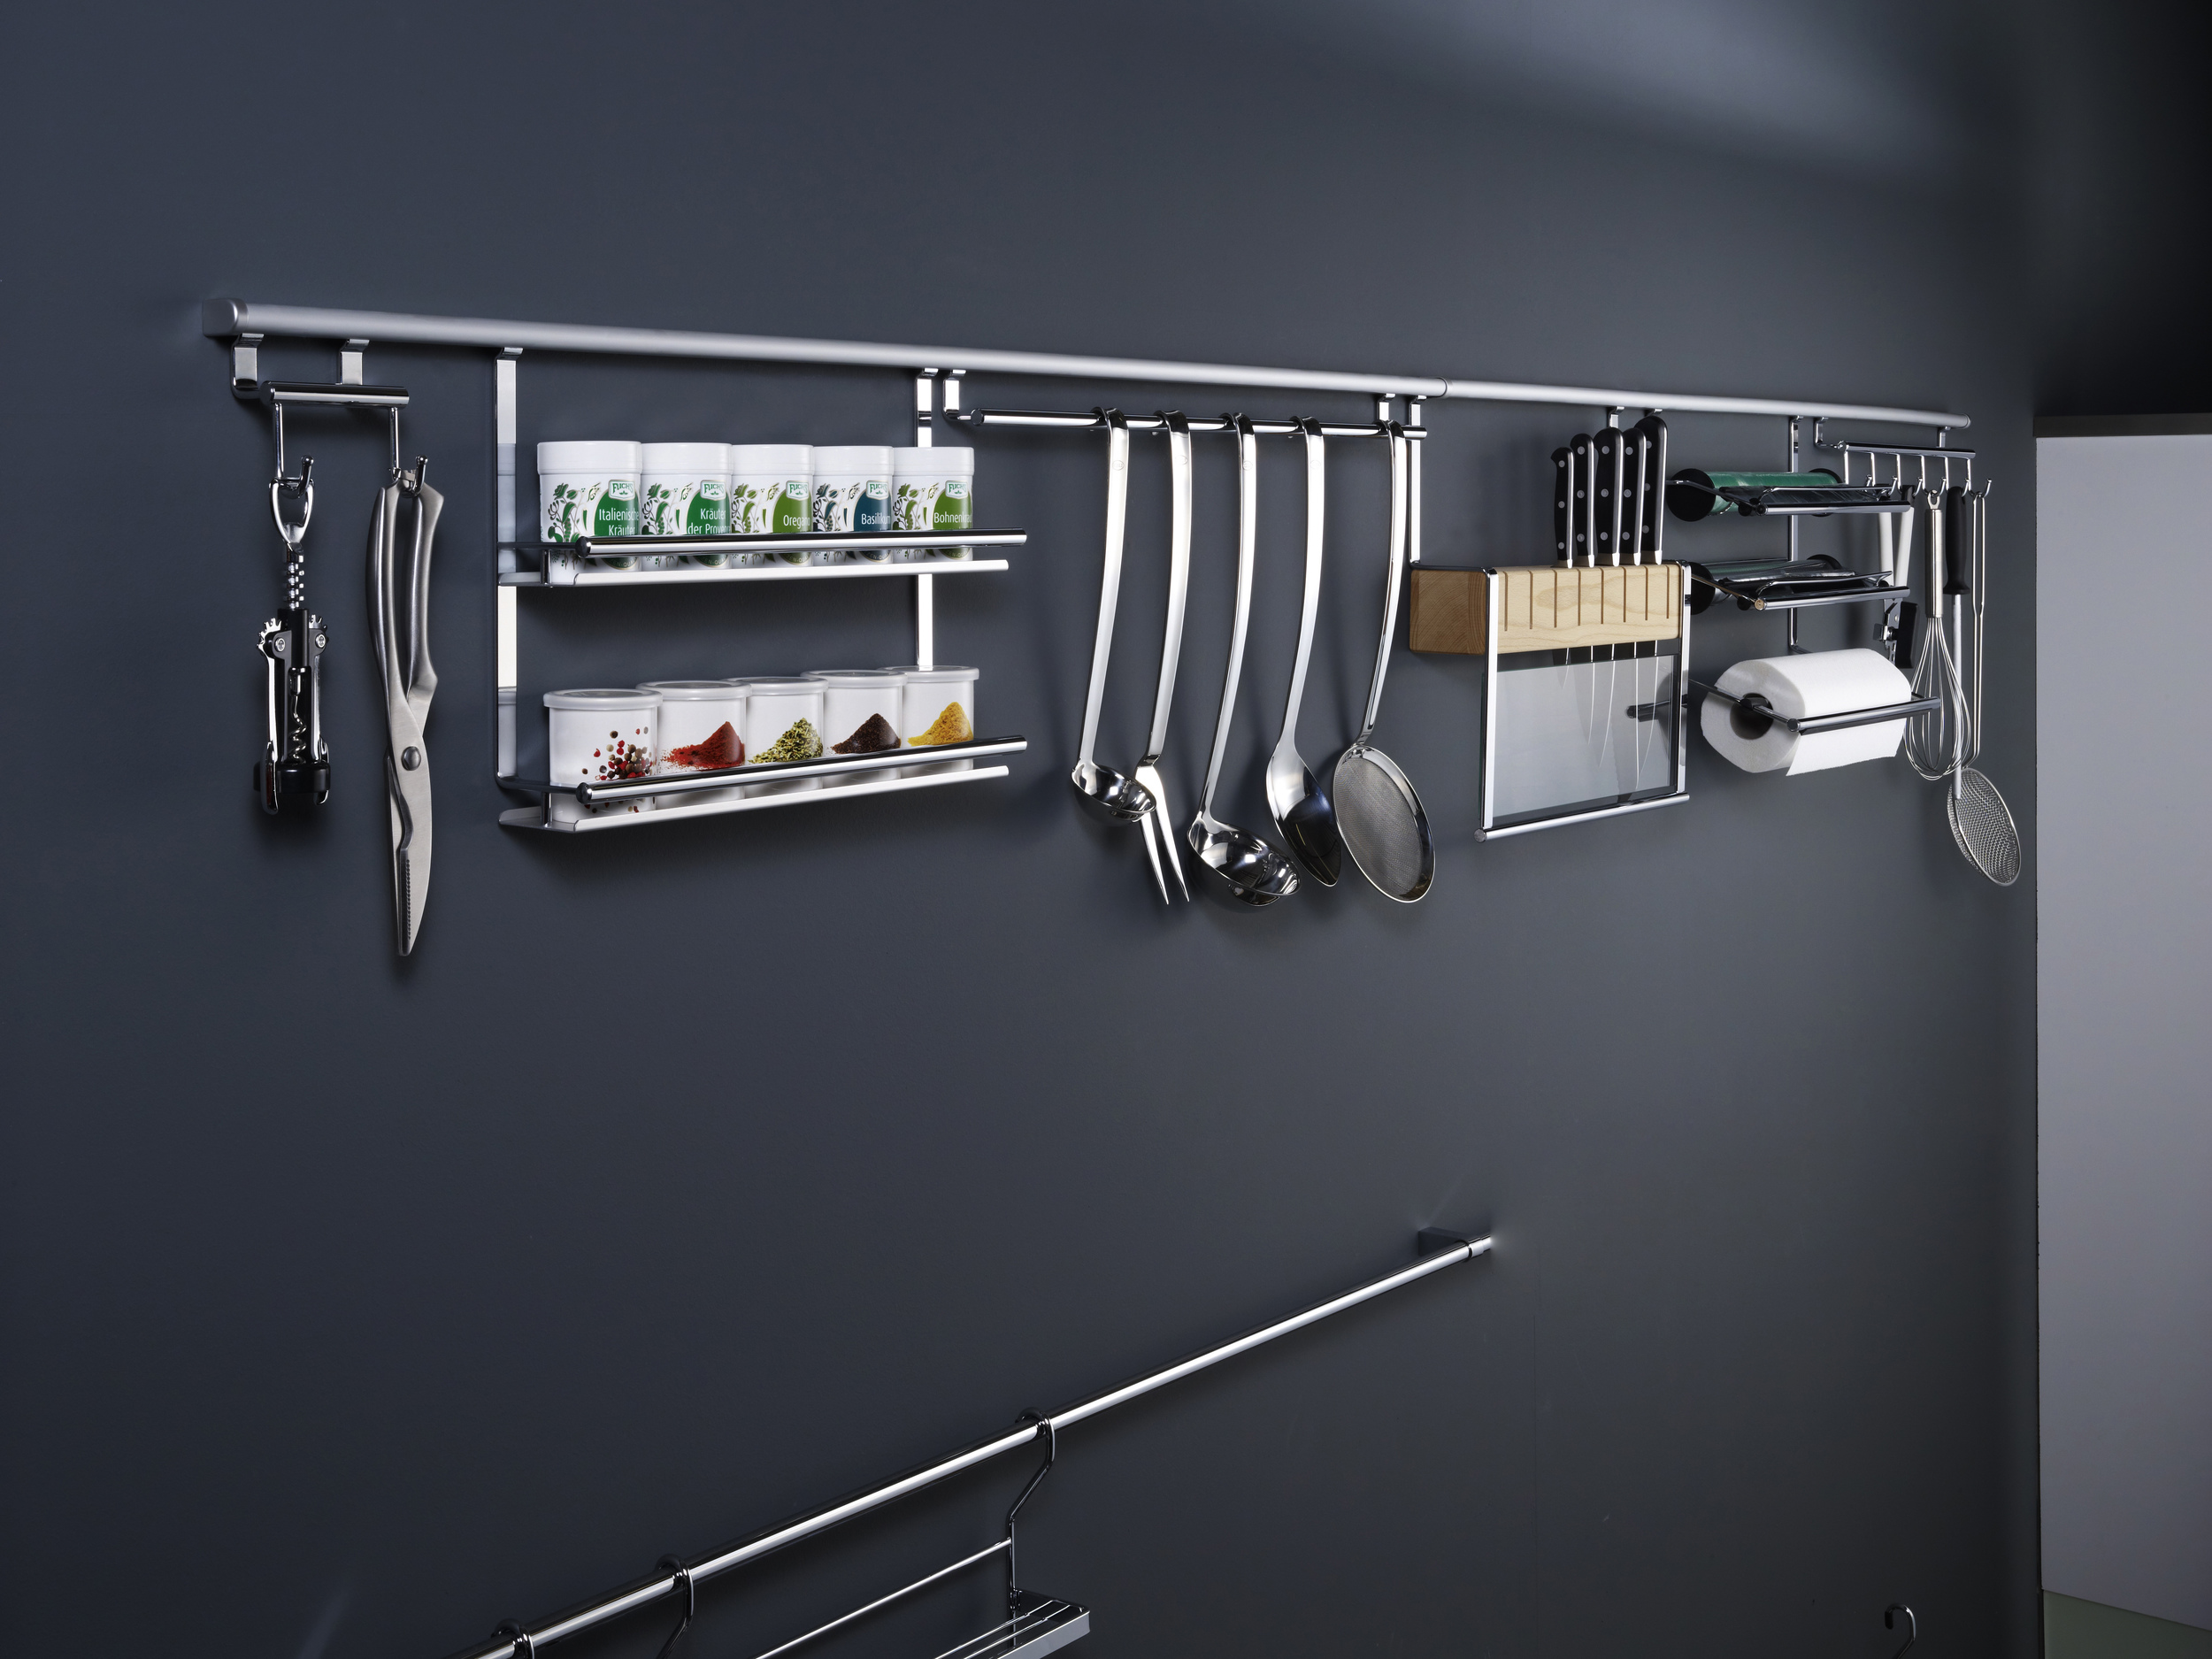 """Design creates order. Or perhaps, in the case of LINERO 2000 railing systems, order creates design. This full line of innovative storage accessories was created for the cook who prefers to keep every kitchen necessity close at hand.From our most popular cook book holder...to whisks, knives and small appliances. Even oils and spices. An assortment ofstylish accessories takes the LINERO 2000 from """"practical"""" to """"beautiful.""""  Ordinarily, you might assume it's necessary to open cabinets and drawers to find the kitchen tools you need. With a BACKSPLASH SYSTEM from Kesseböhmer, cooking utensils and more are in plain sight and right at hand. Choose from a huge selection. Sturdy mounting rails keep a low profile against walls and concealed connections add streamlined style."""